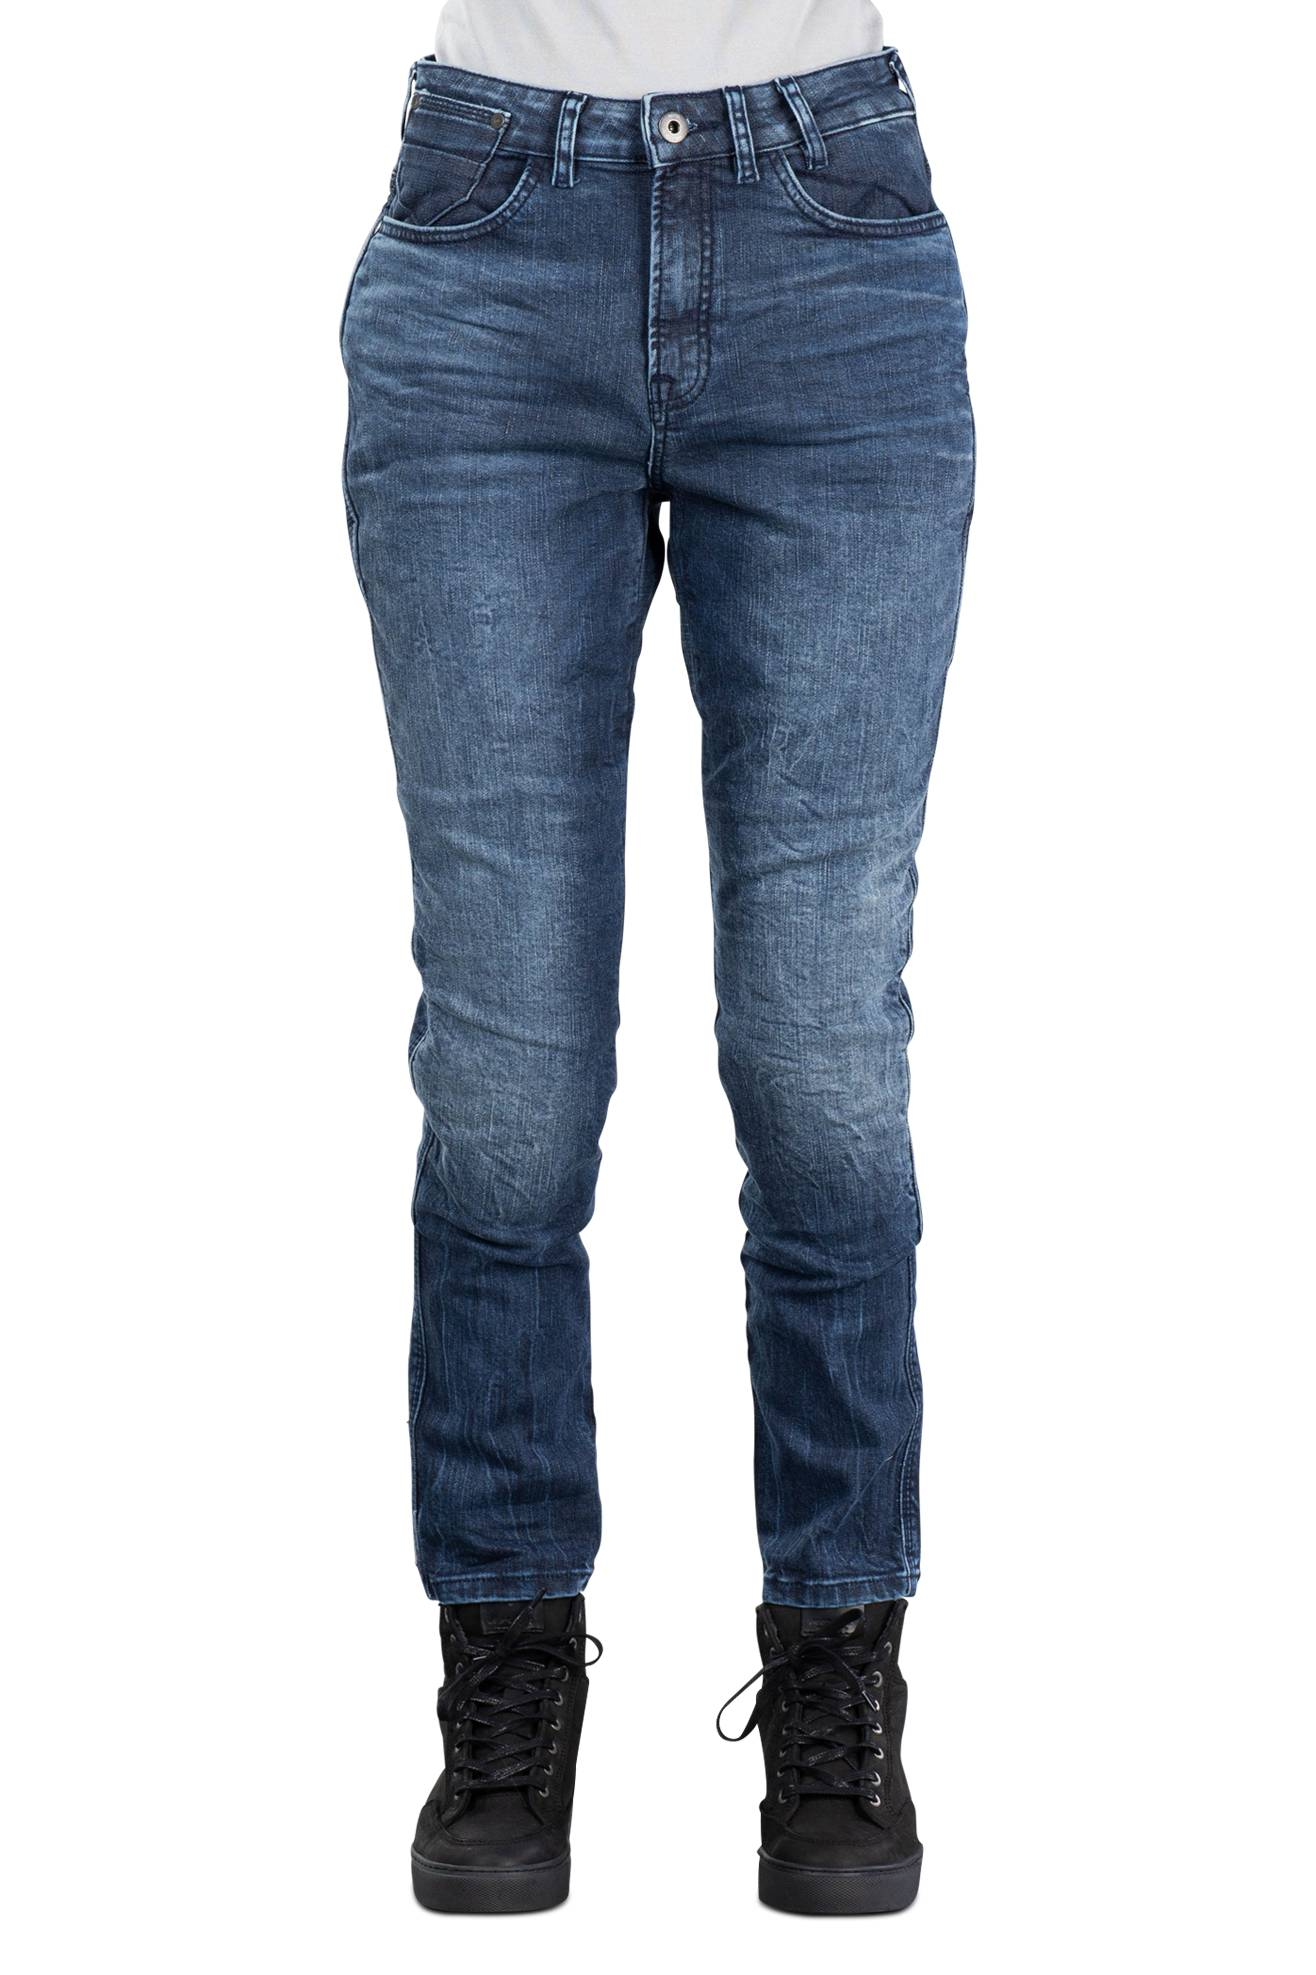 REV'IT! Jeans Moto Donna Rev'it! Victoria Azzurri